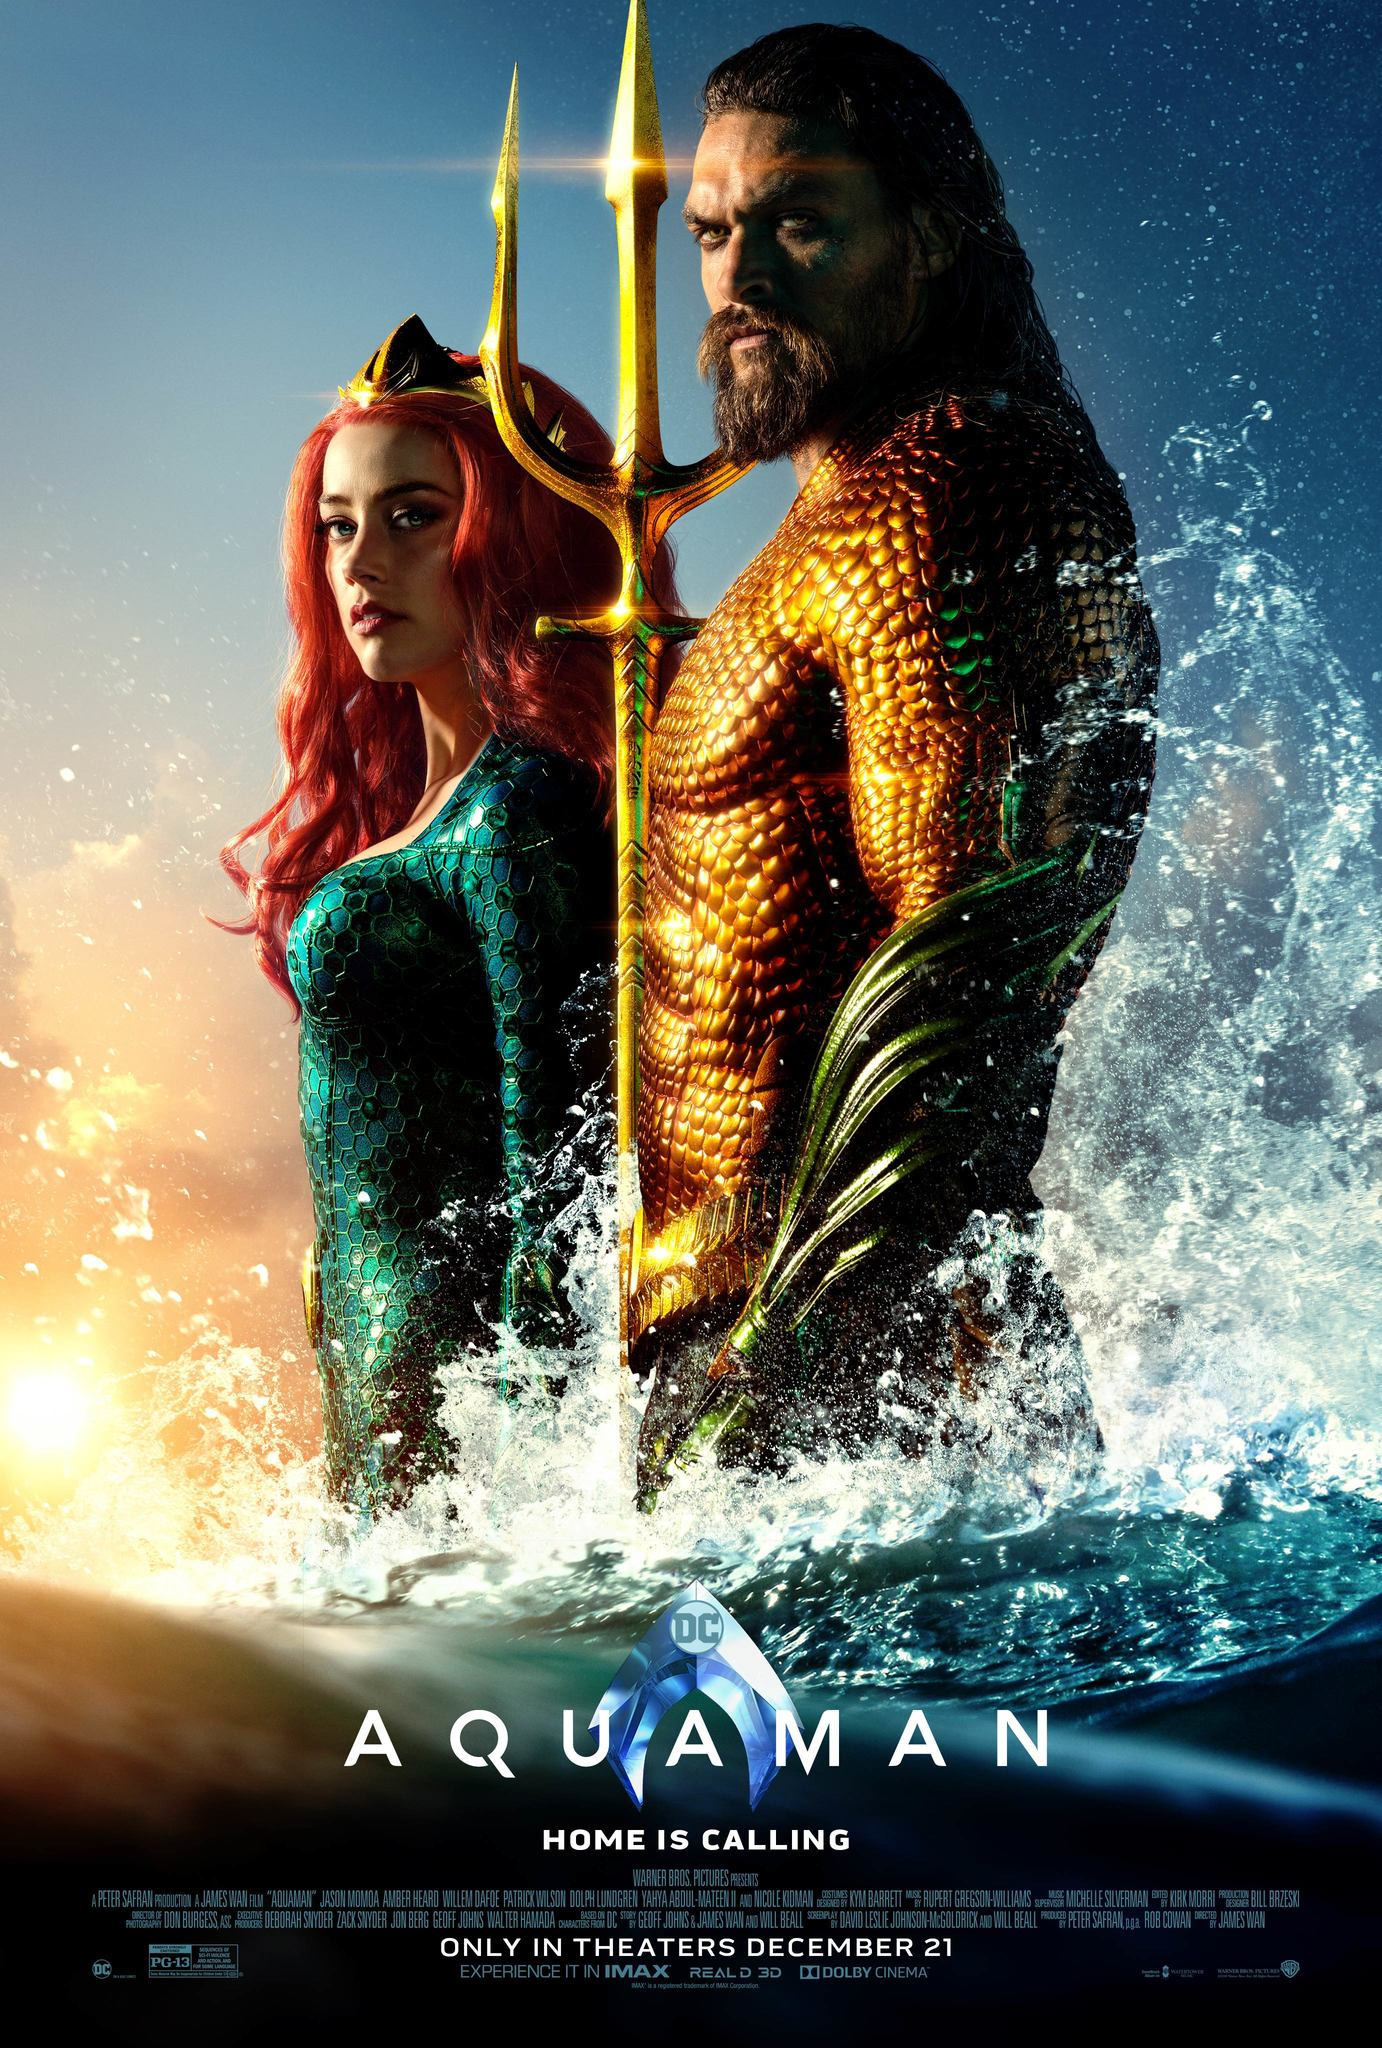 Aquaman 2018 Download And Watch Full Movie In Dual Audio Hindi And English